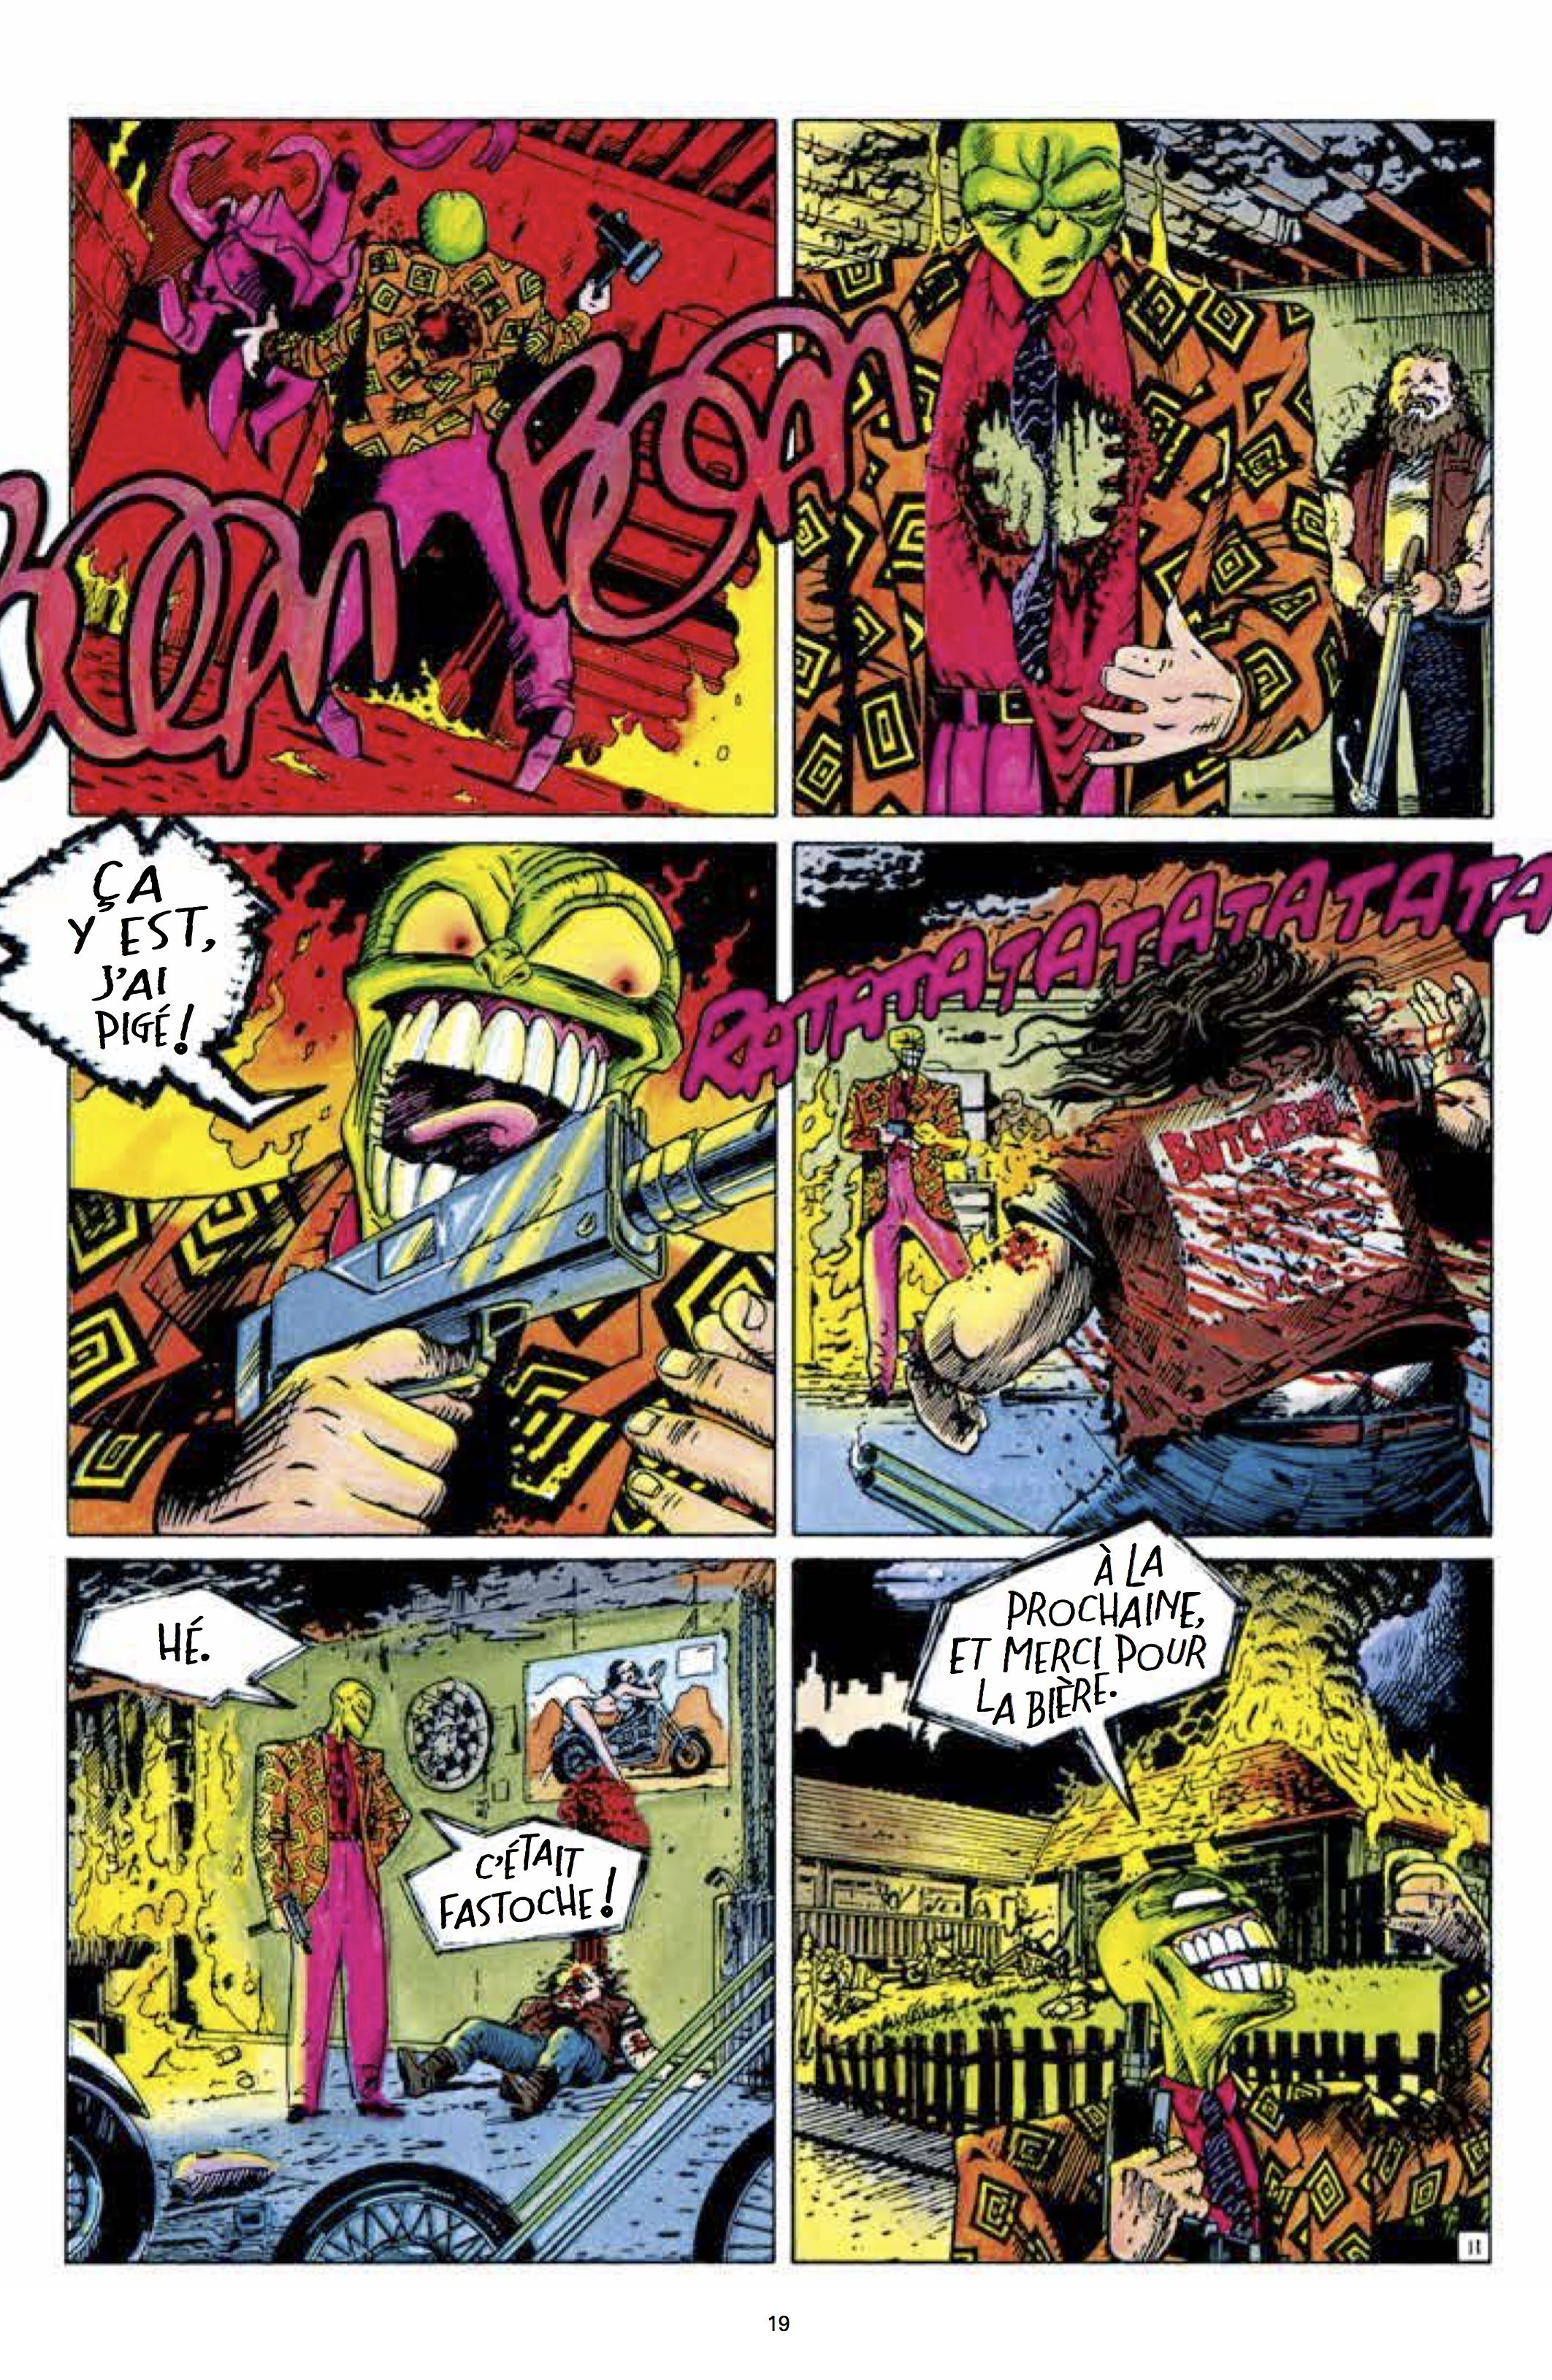 THE MASK_p19